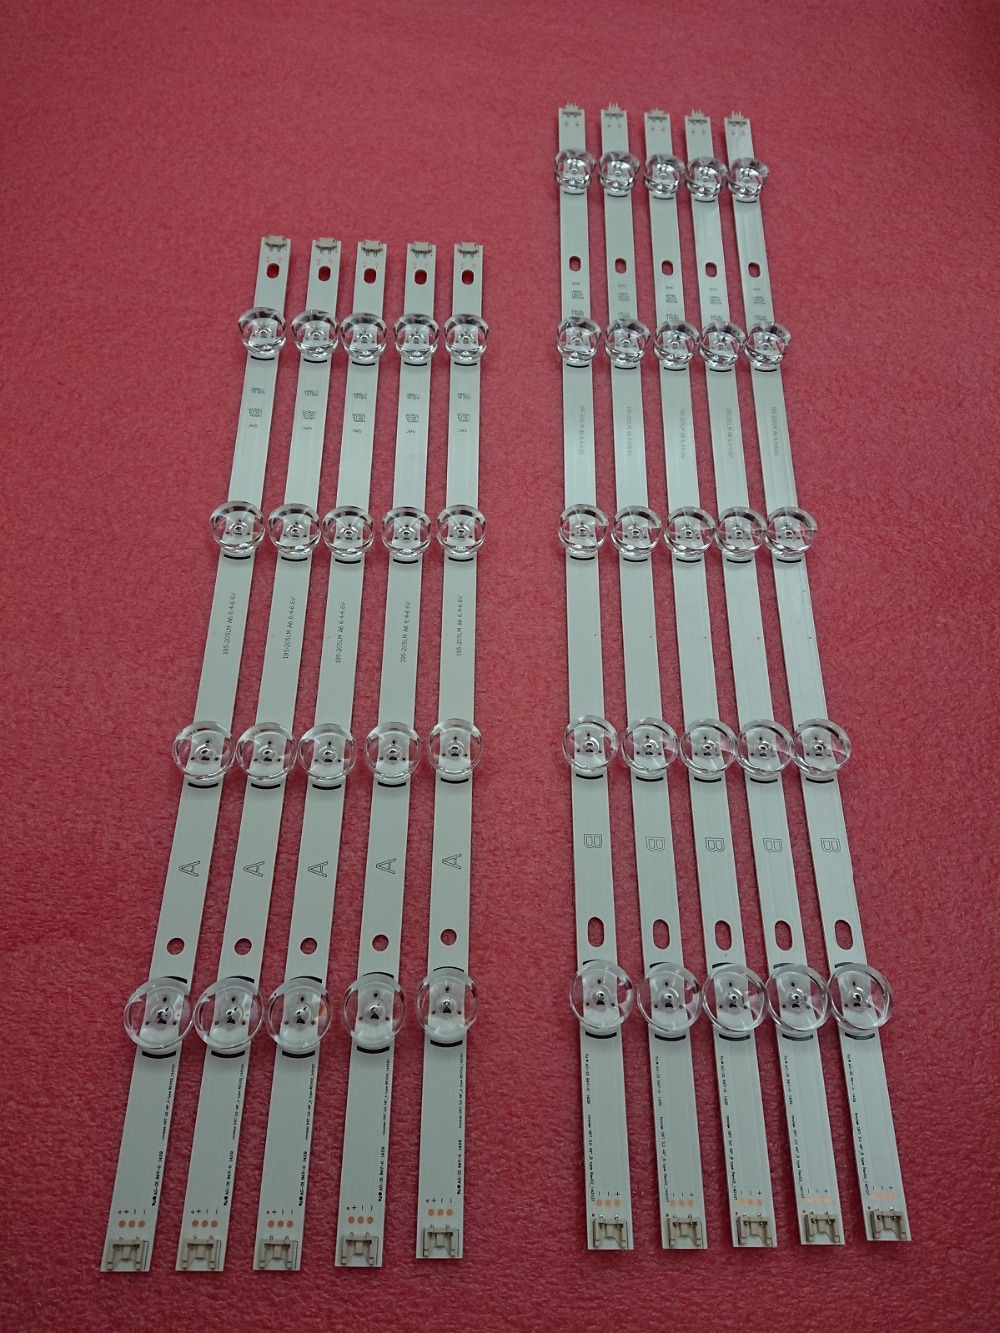 New 5set=50 PCS LED Backlgith Strip Replacement For LG 49LB5500 LC490DUE Innotek DRT 3.0 49 A B 6916L-1788A 1789A 1944A 1945A